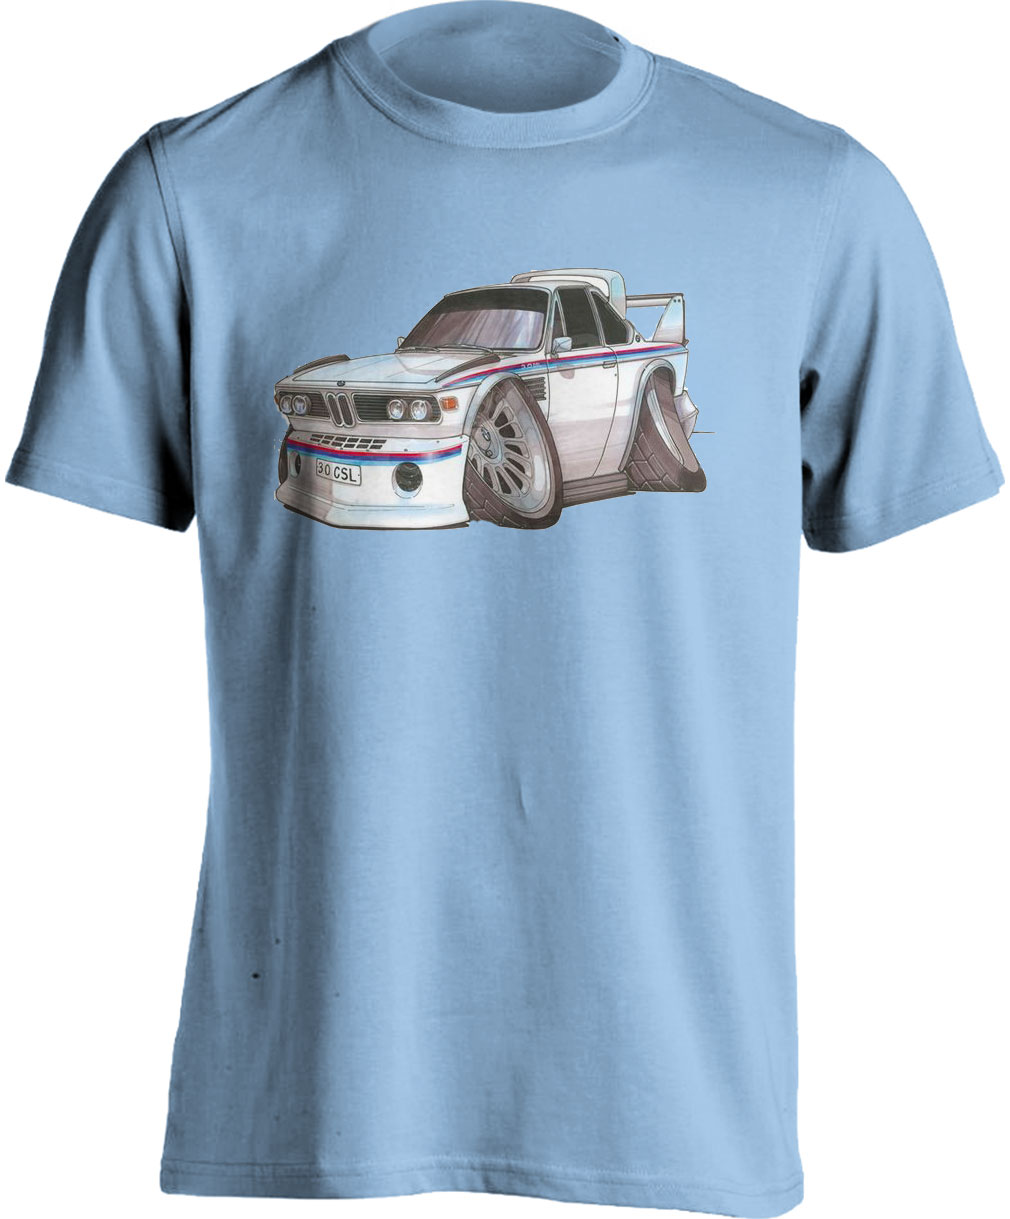 Koolart BMW 3.0 CSi White/Red&Blue Stripe 0732 Adults T Shirt